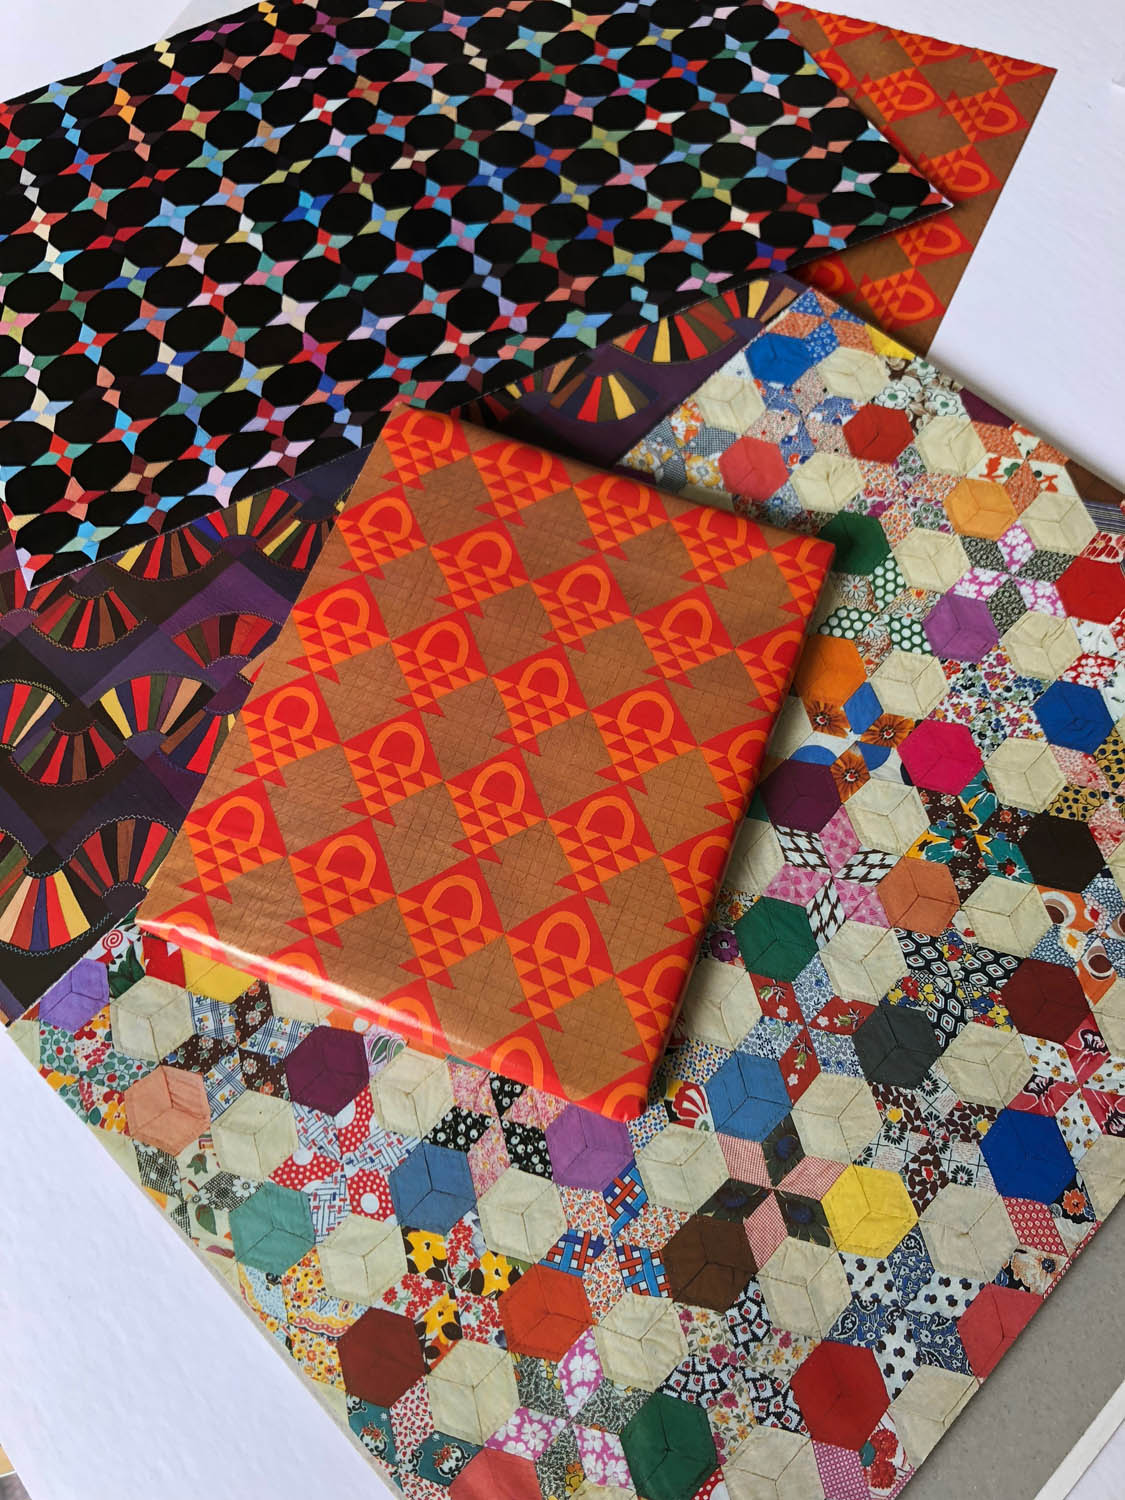 assorted gift wrappings with quilt pattern designs